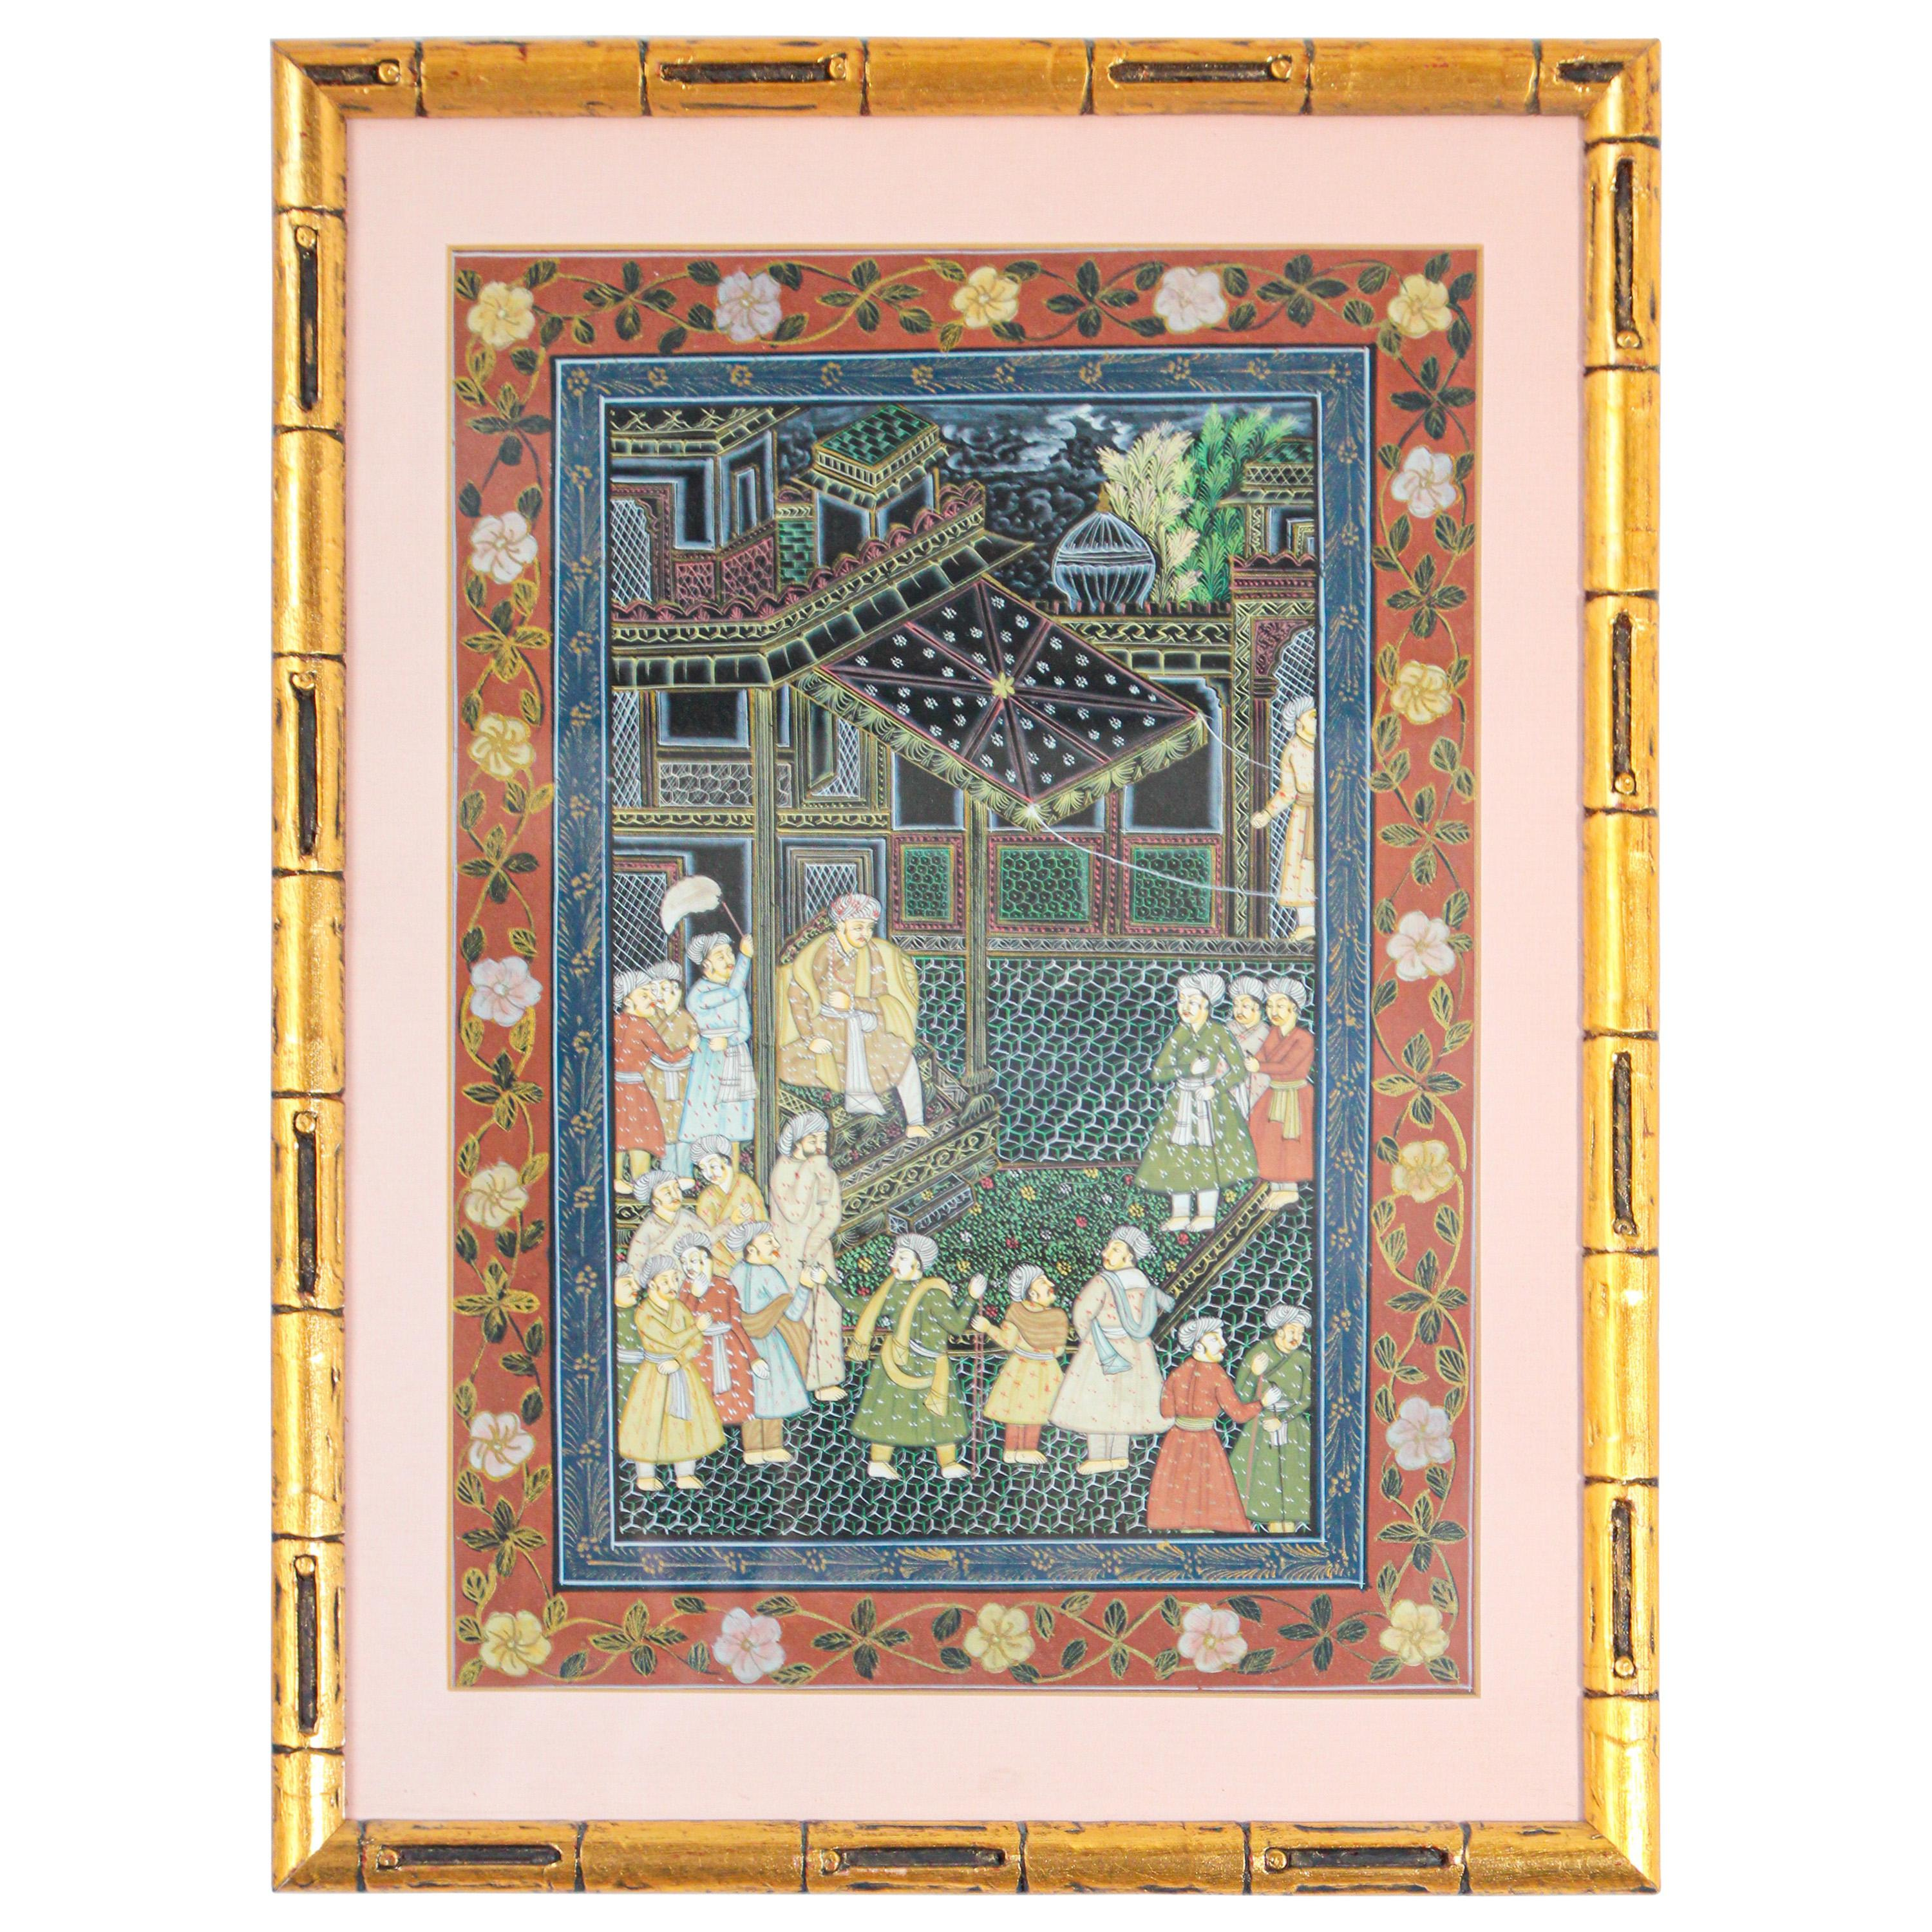 19th Century Indian Mughal Scene Miniature Painting